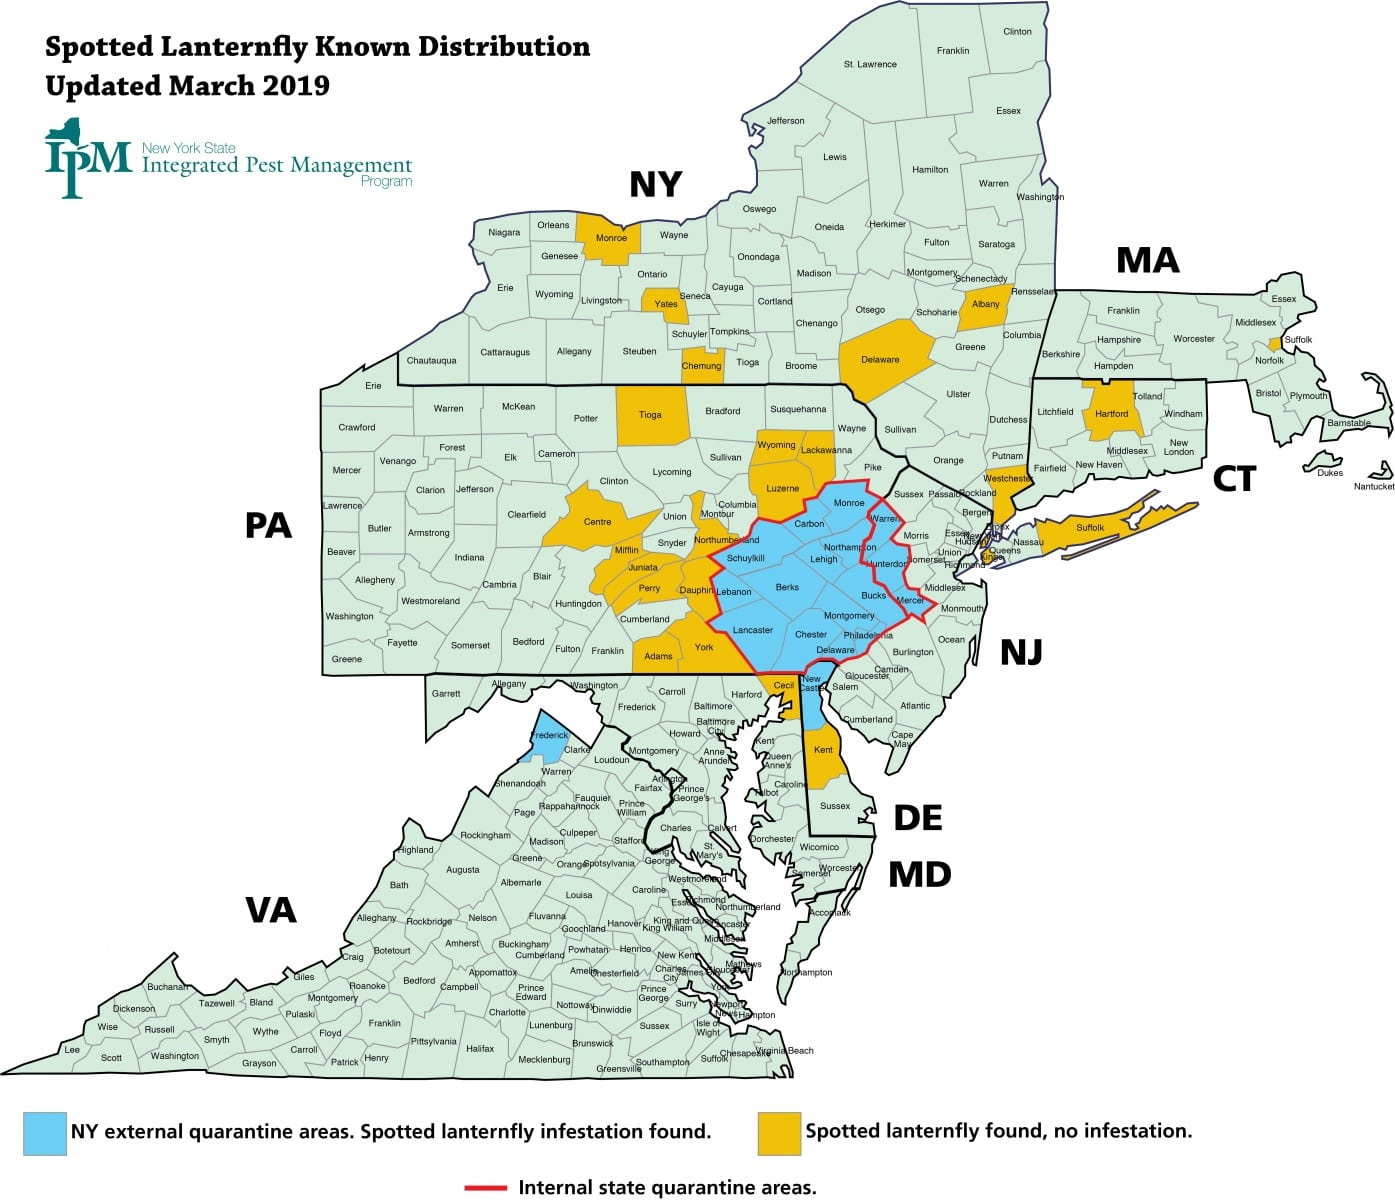 Map of NY, MA, CT, PA, NJ, MD, DE and VA showing counties where spotted lanternfly infestations have been found as well as counties in which spotted lanternflies have been found, but where there is no infestation.